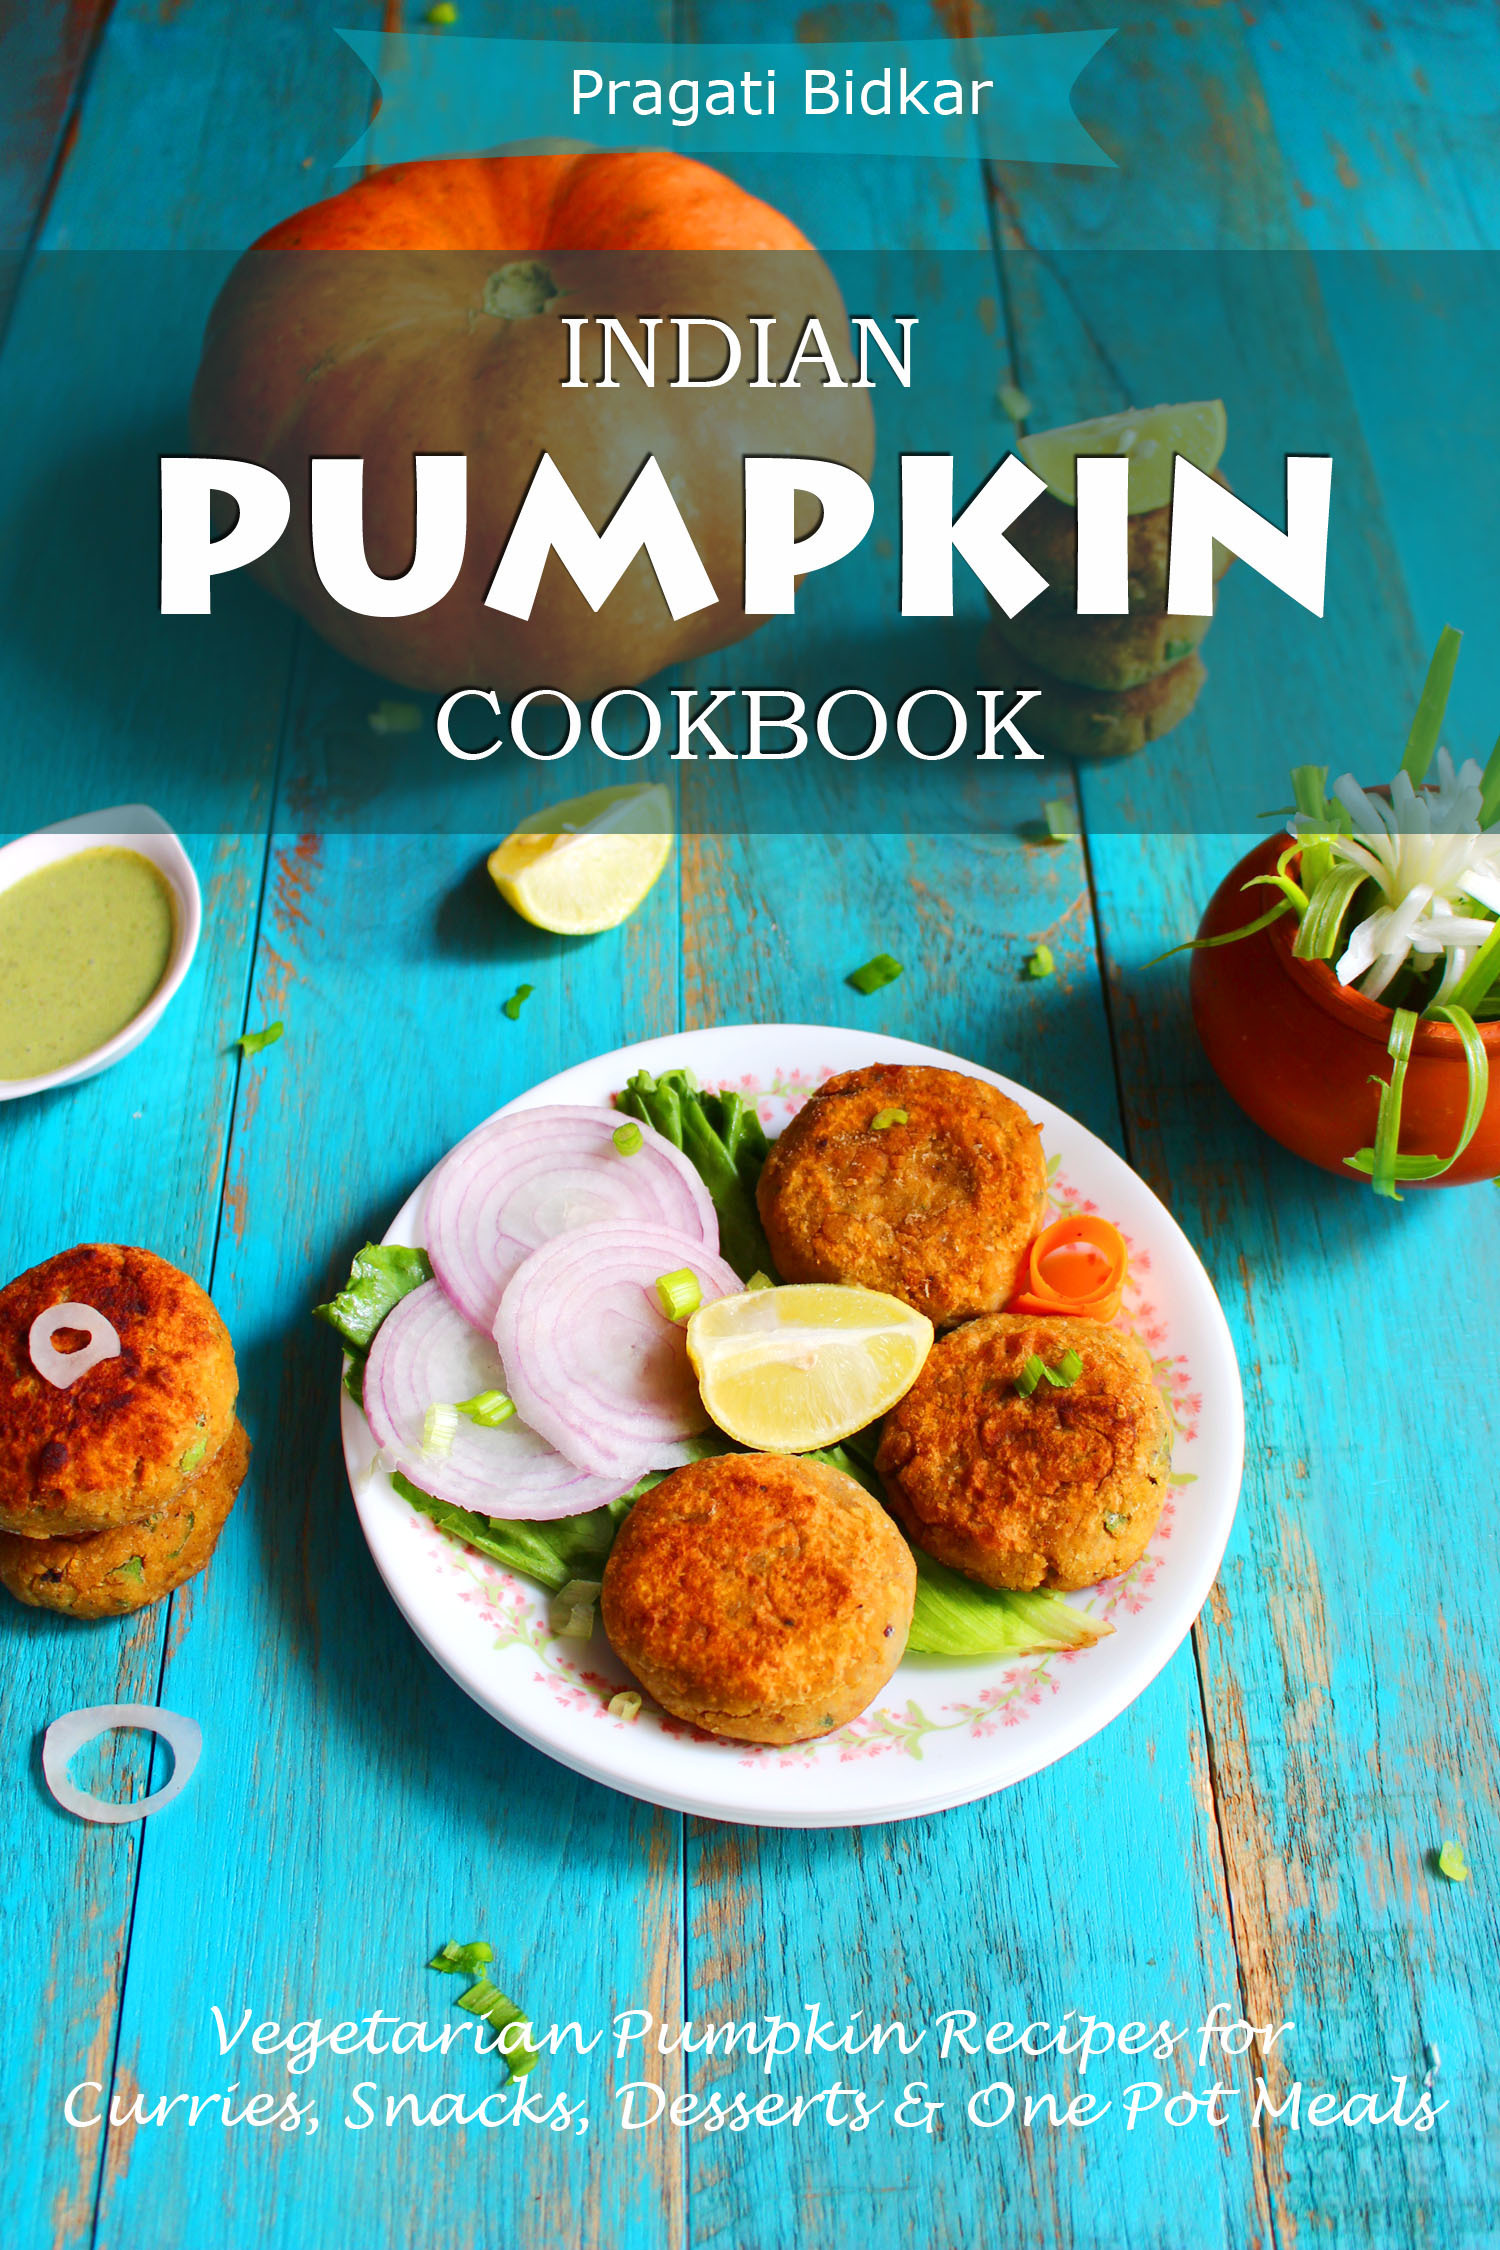 Indian Pumpkin Cookbook Celebrates Fall & Pumpkin